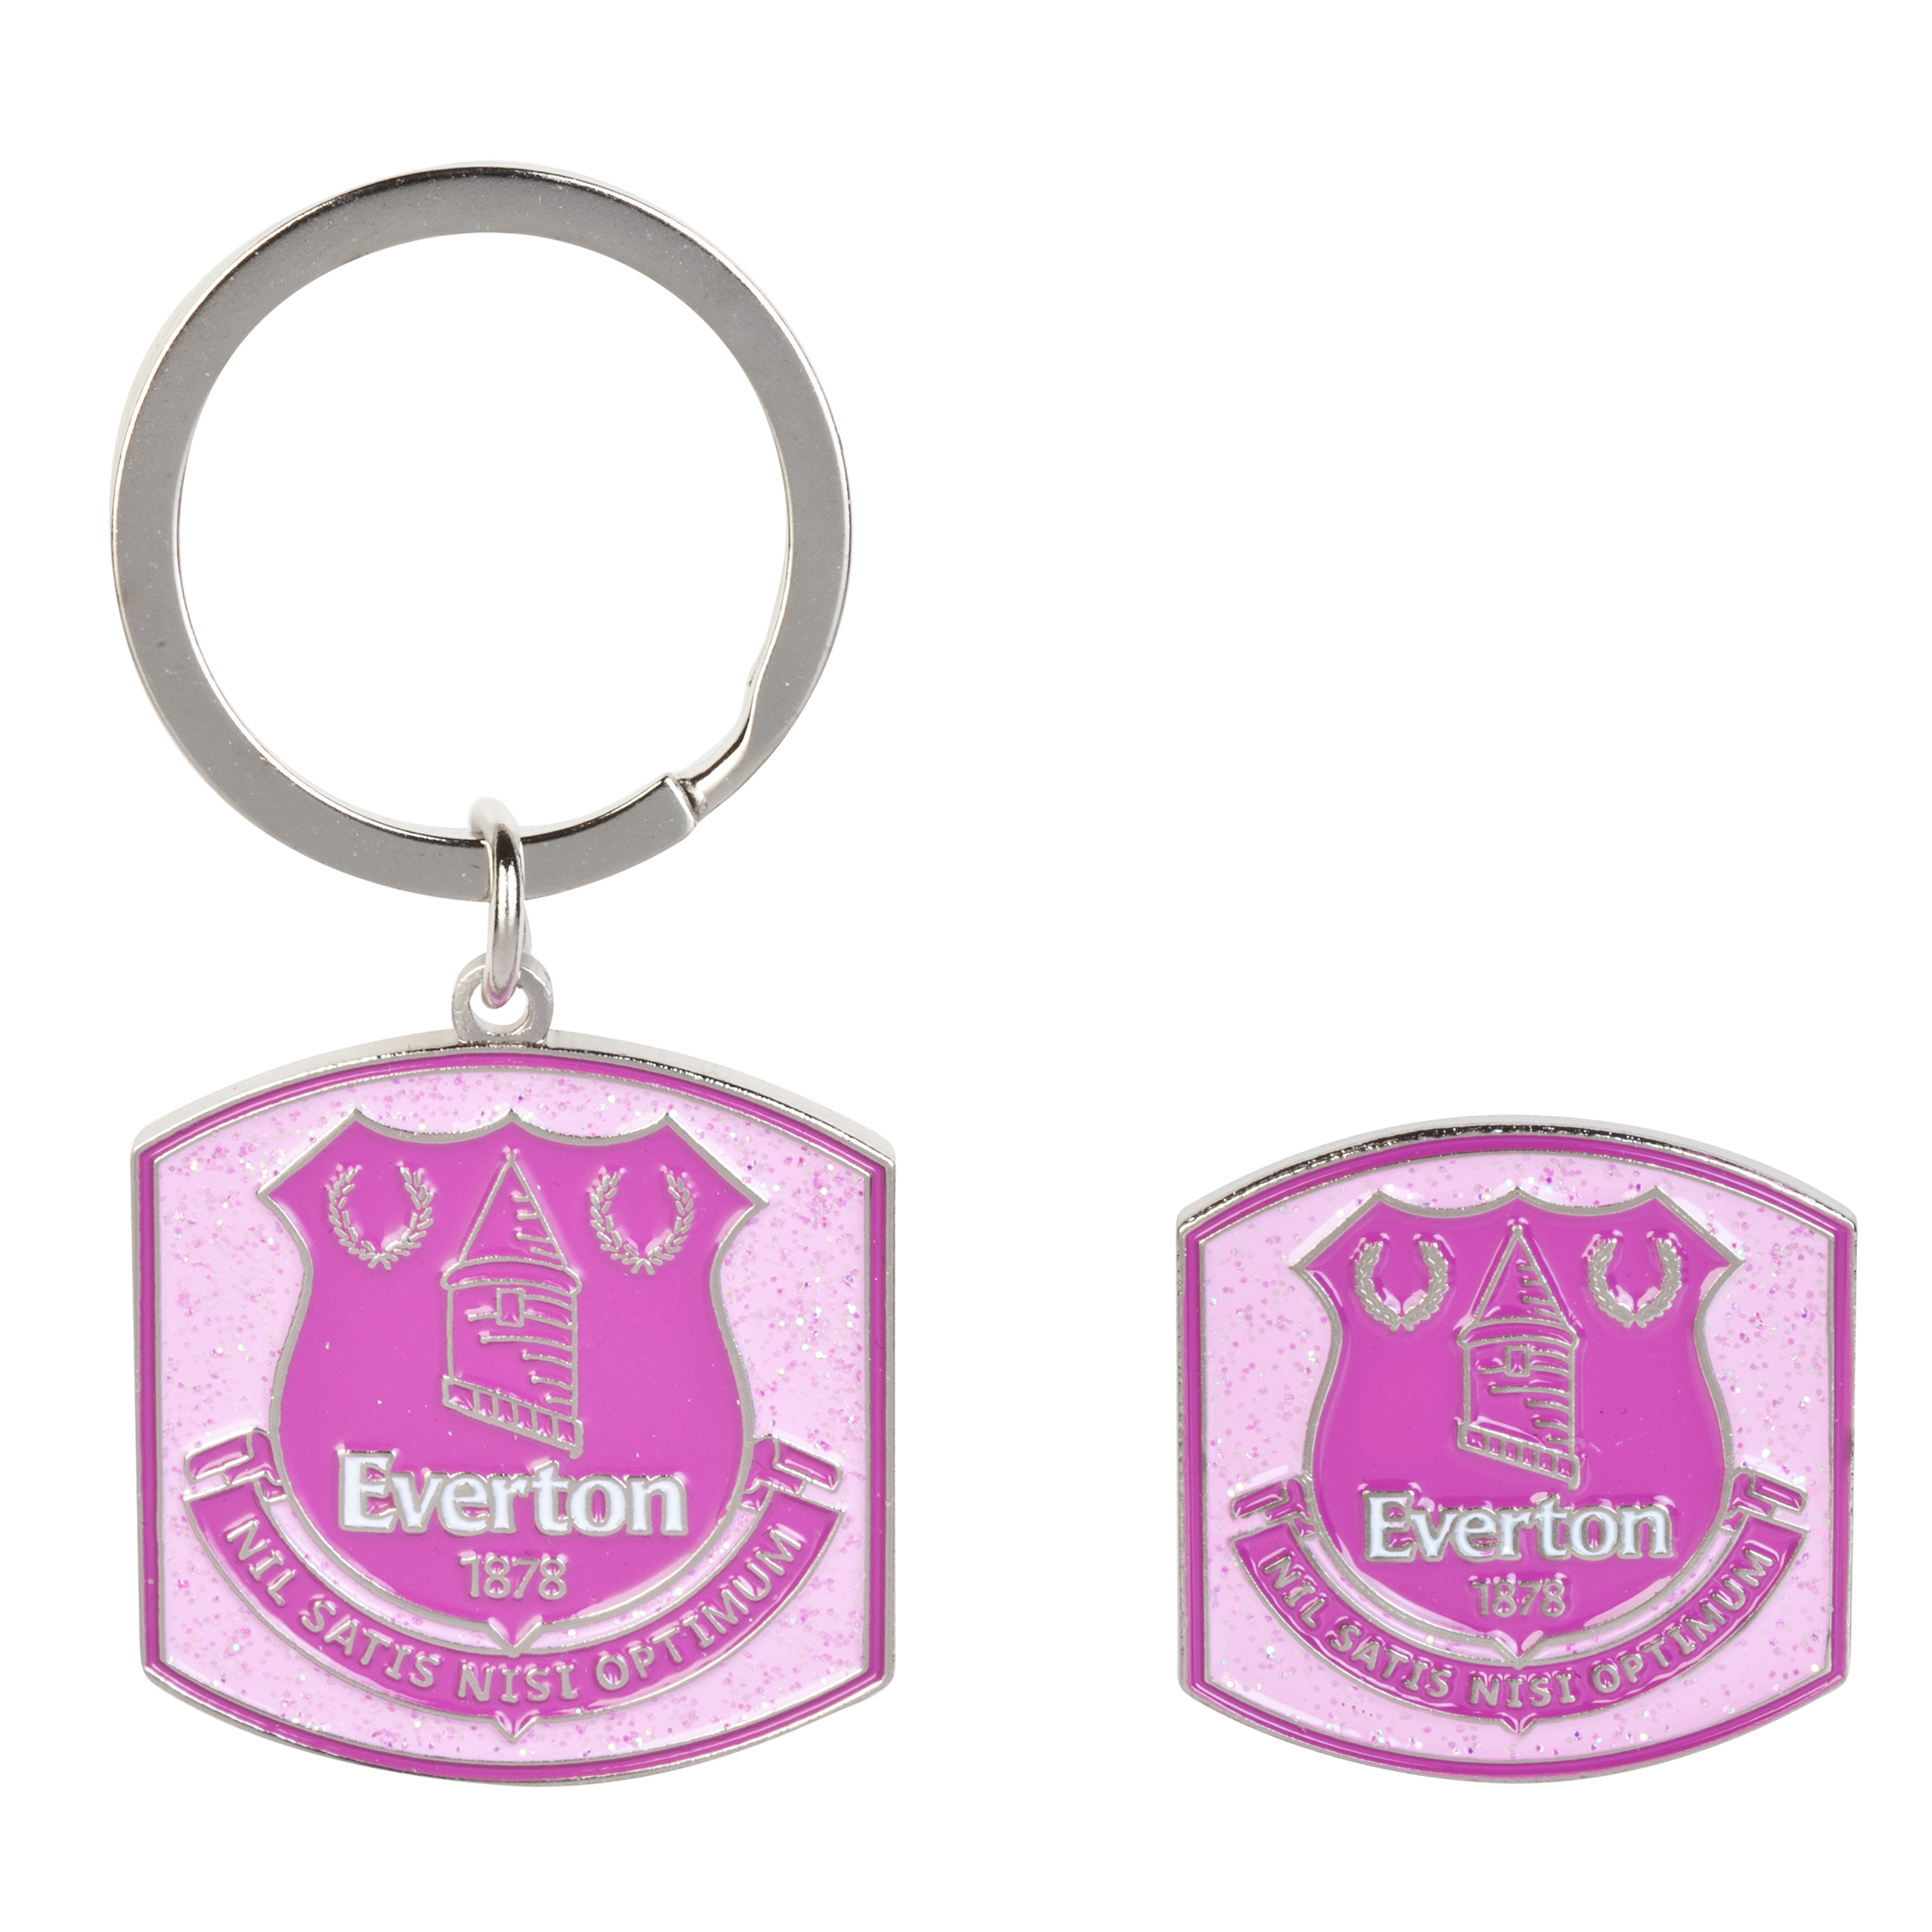 Everton Pink Glitter Keyring And Bagde Set